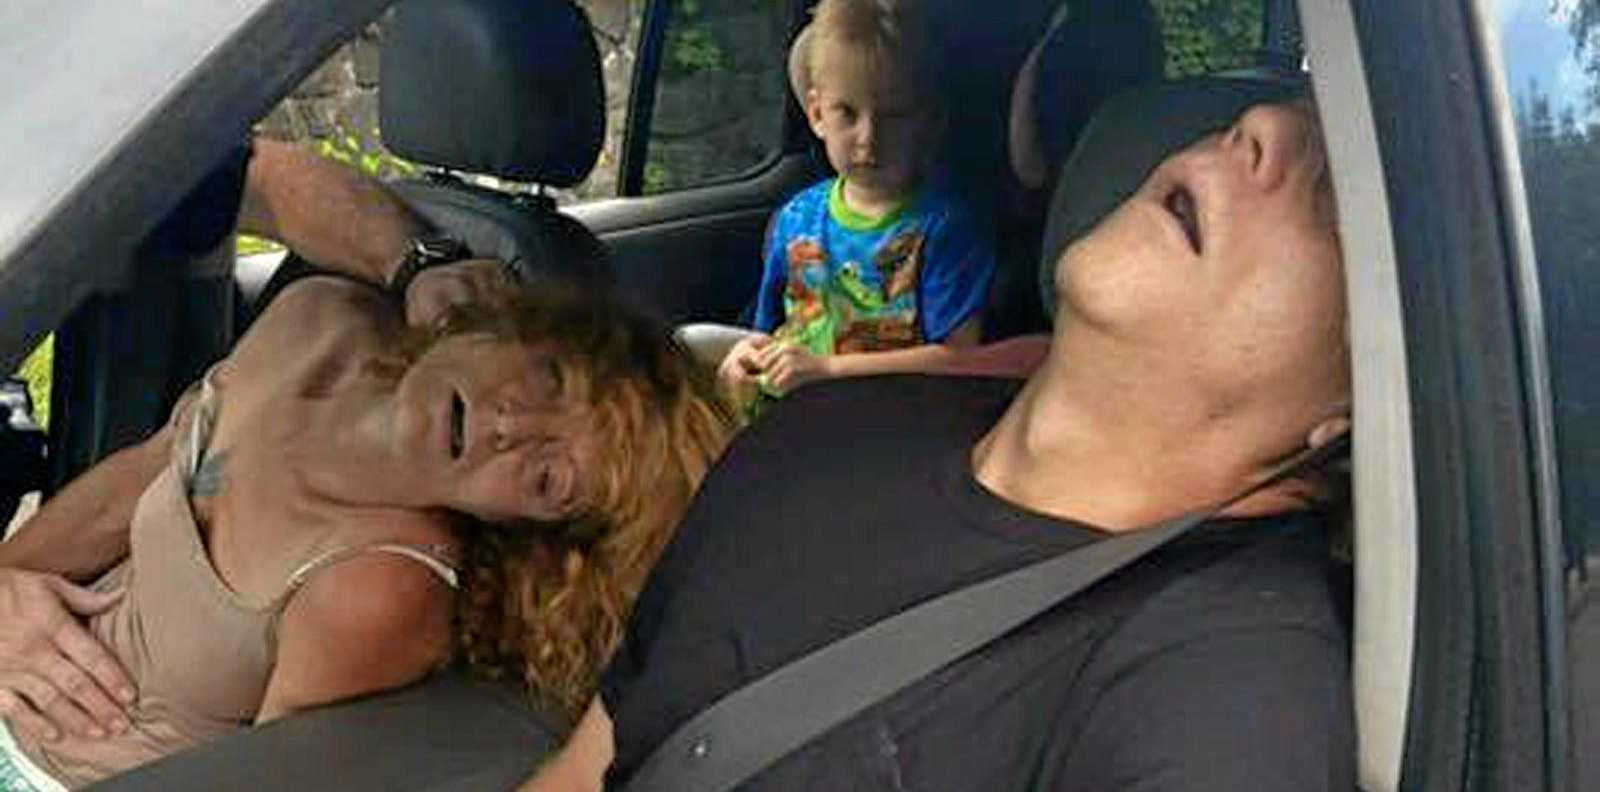 EFFECTS OF HEROIN: A police officer pulled over this driver for driving erratically. The woman had passed out from an overdoes and the driver became unconscious too. A passer-by snapped this photo.